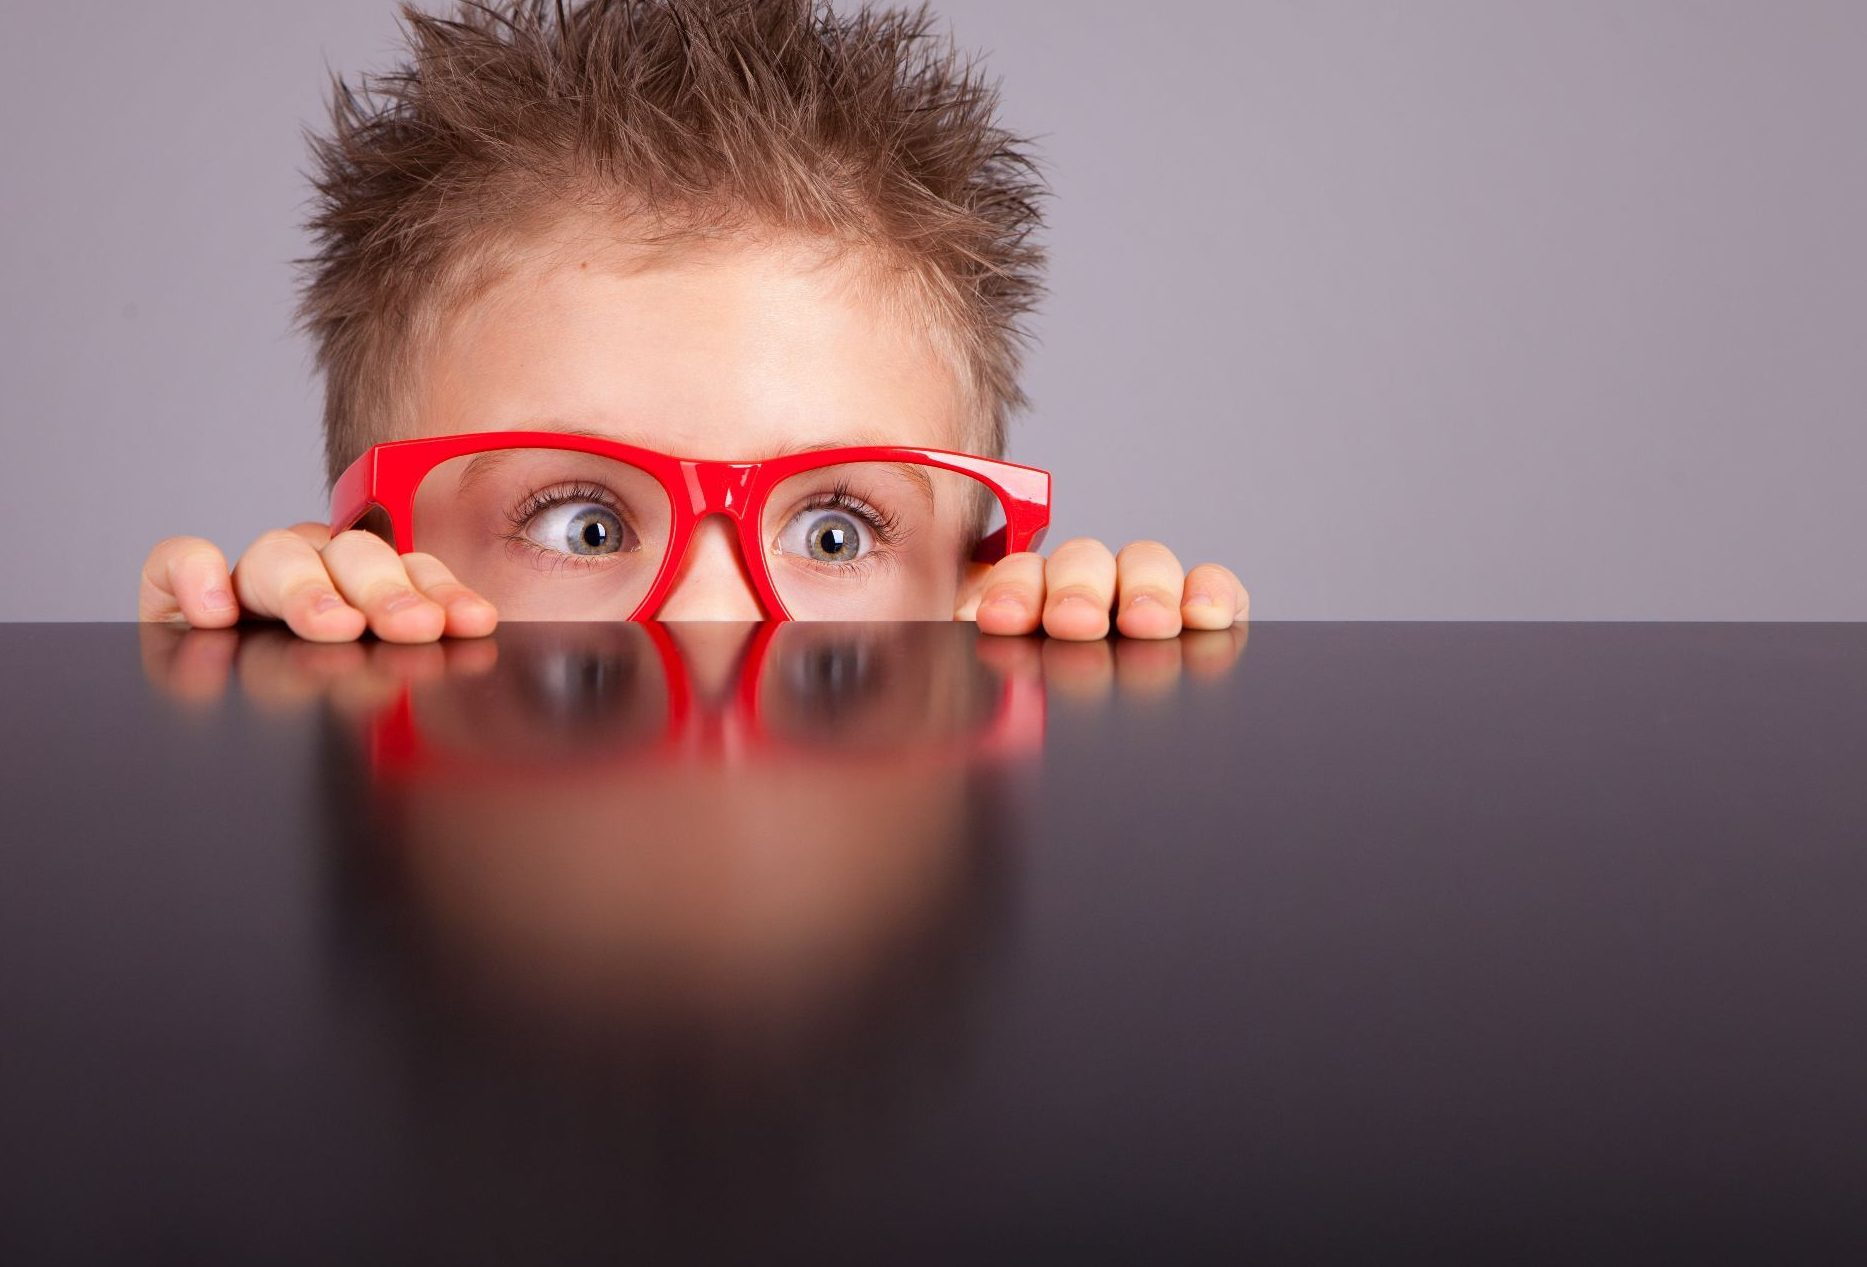 10 Tips for Making Your Blog Post Easier to Read | Edublogs |Boy with glasses peeking over bench